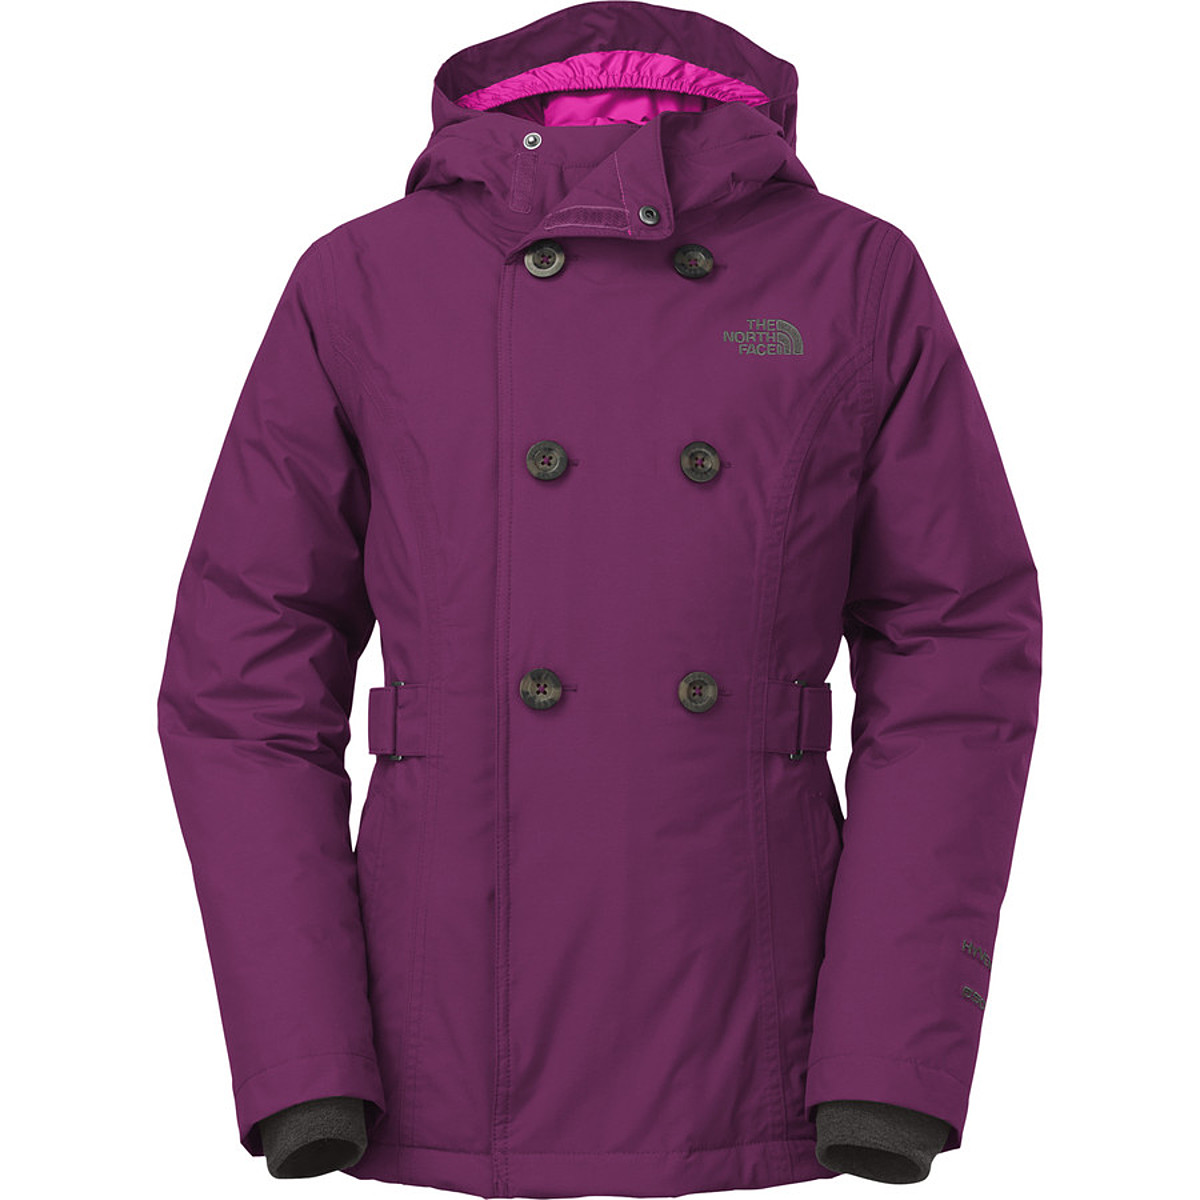 The North Face Chloe Peacoat